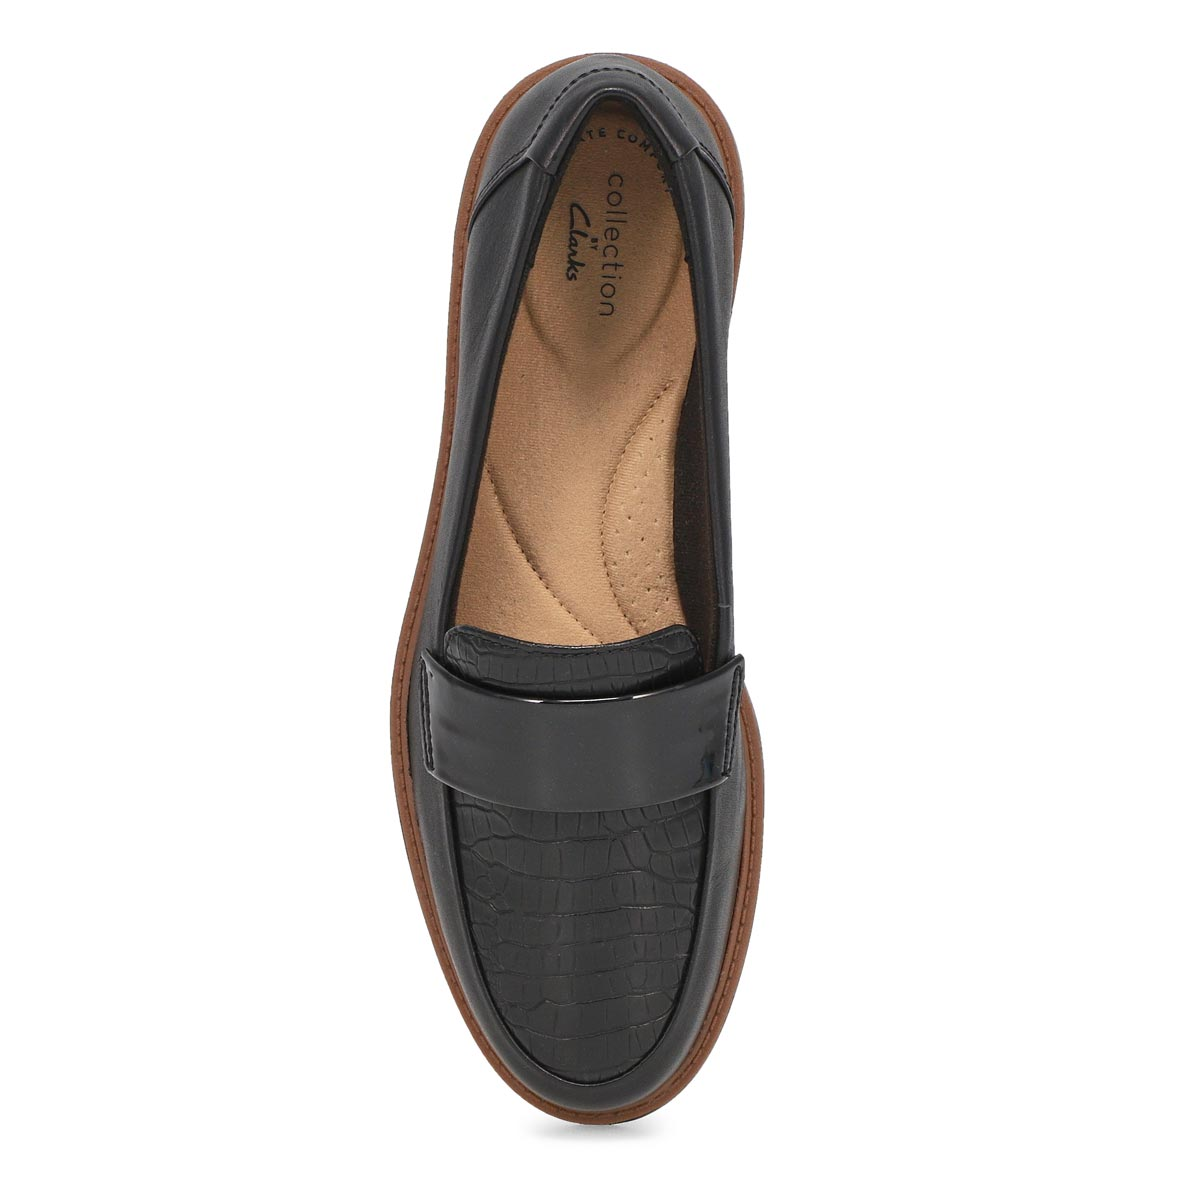 Lds Raisie Arlie blk casual loafer